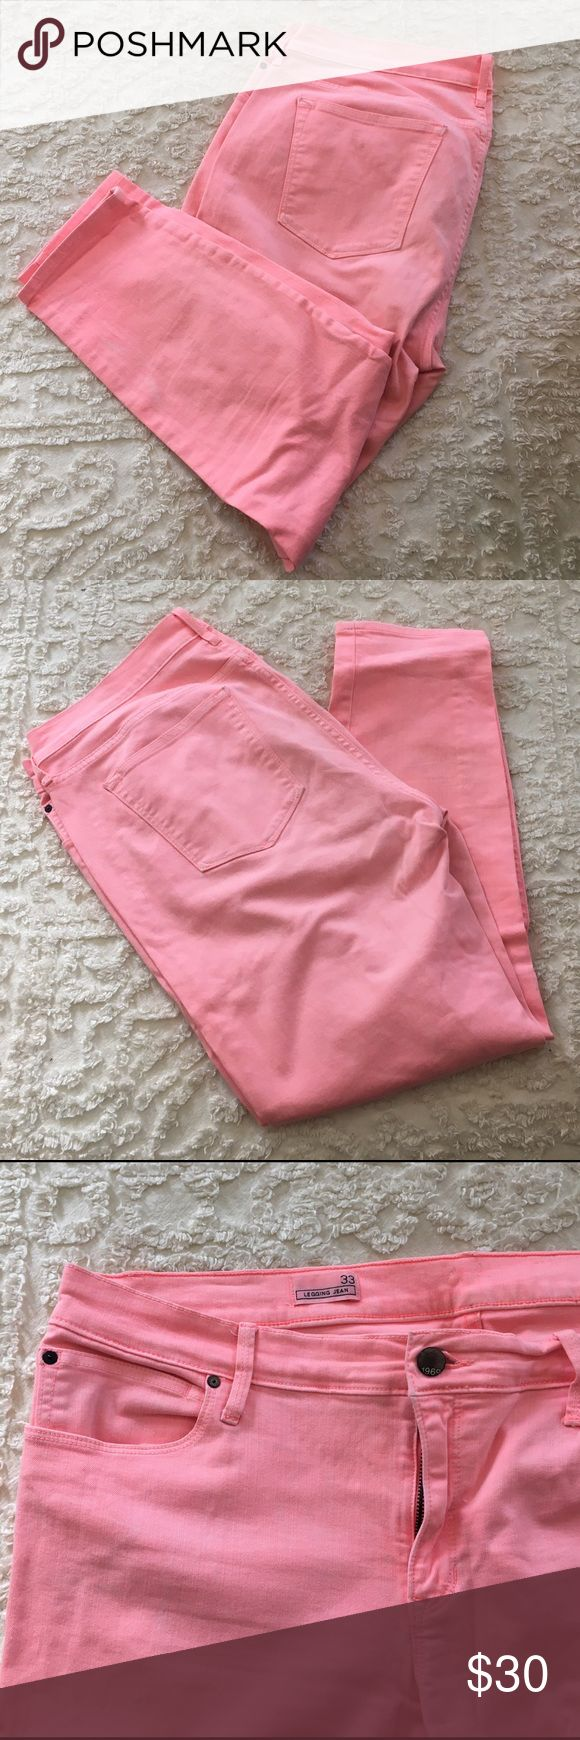 🍑 Peach Pink Stretch Skinny Jeans GAP PLUS 🍑 Love these!  Love the color.  Super stretchy!  Small fading discoloration at ankle of Pant barely noticeable adds character if you ask me 😊 (see first pic) and just noticed an eyeliner mark on them (pictured).  Lowering price accordingly. GAP Jeans Ankle & Cropped